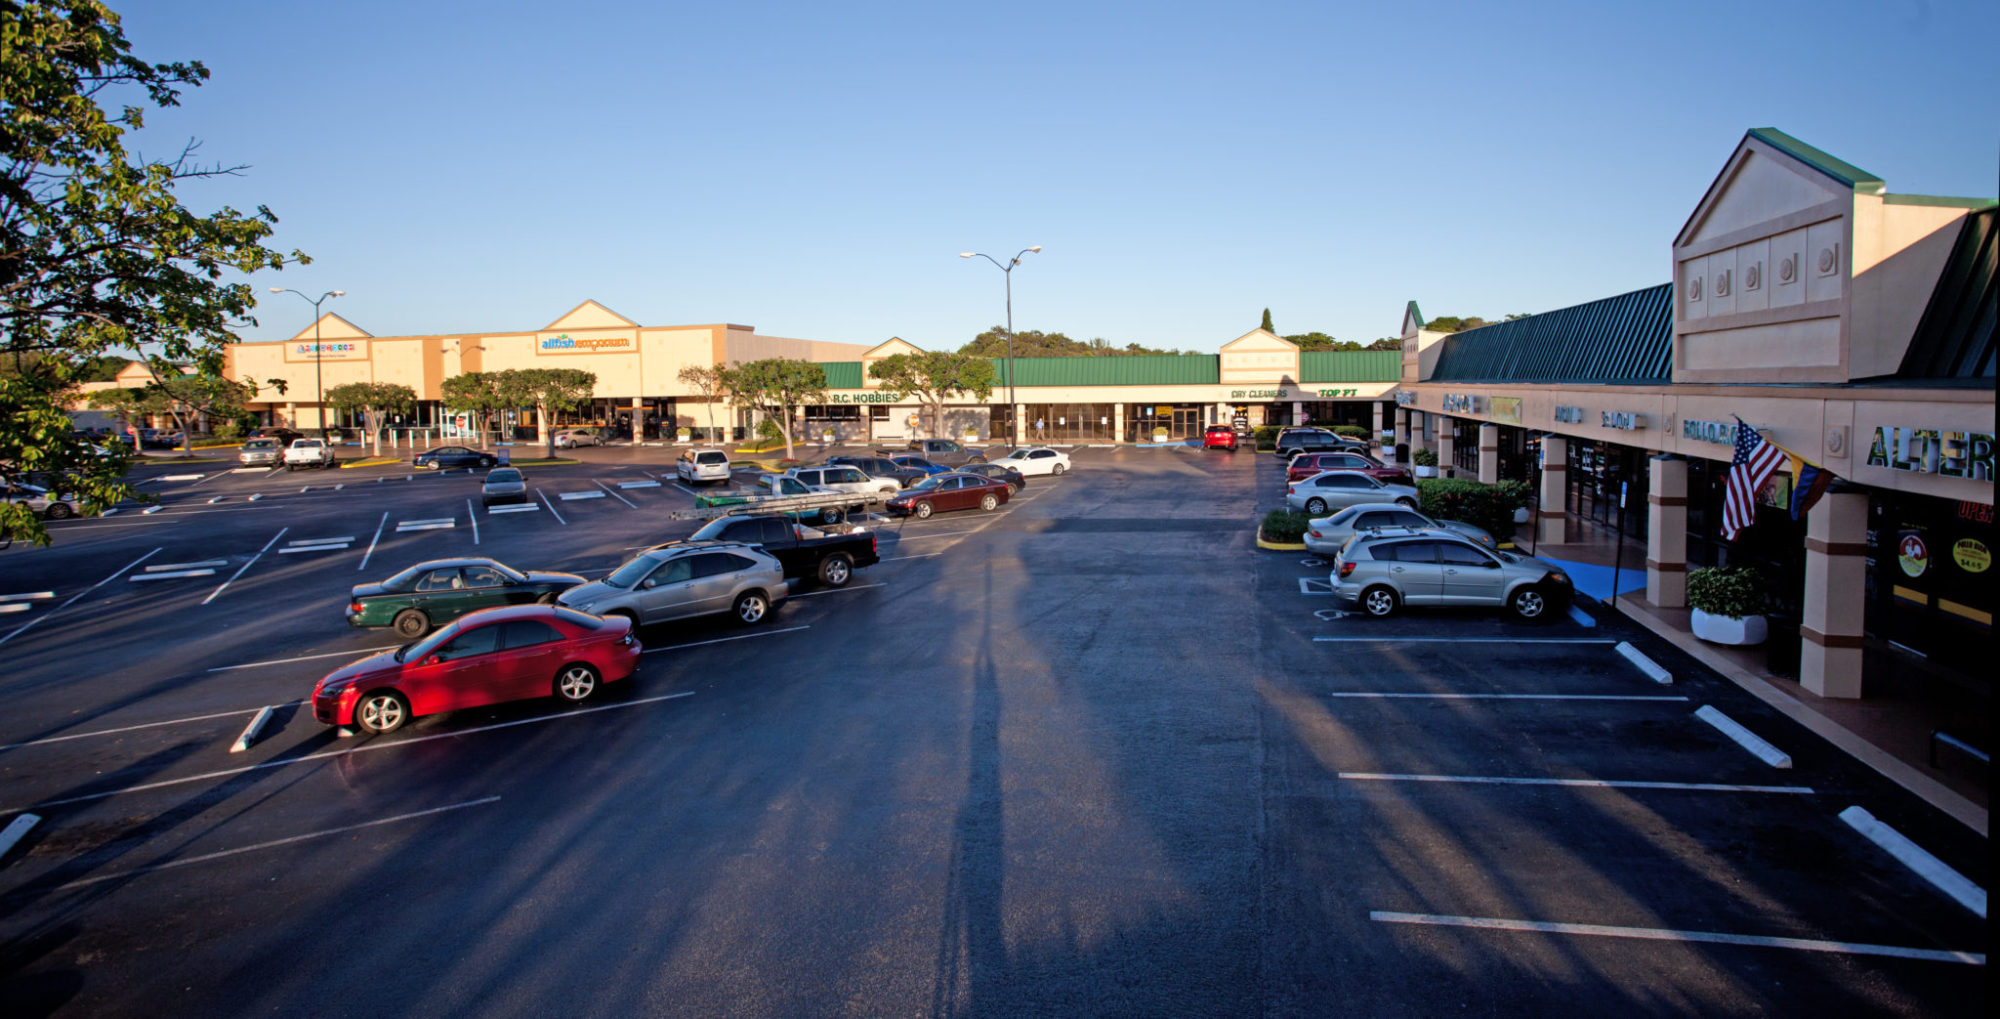 October 17th, 2013 - Tamarac, Florida: The University Commons Shopping Center.